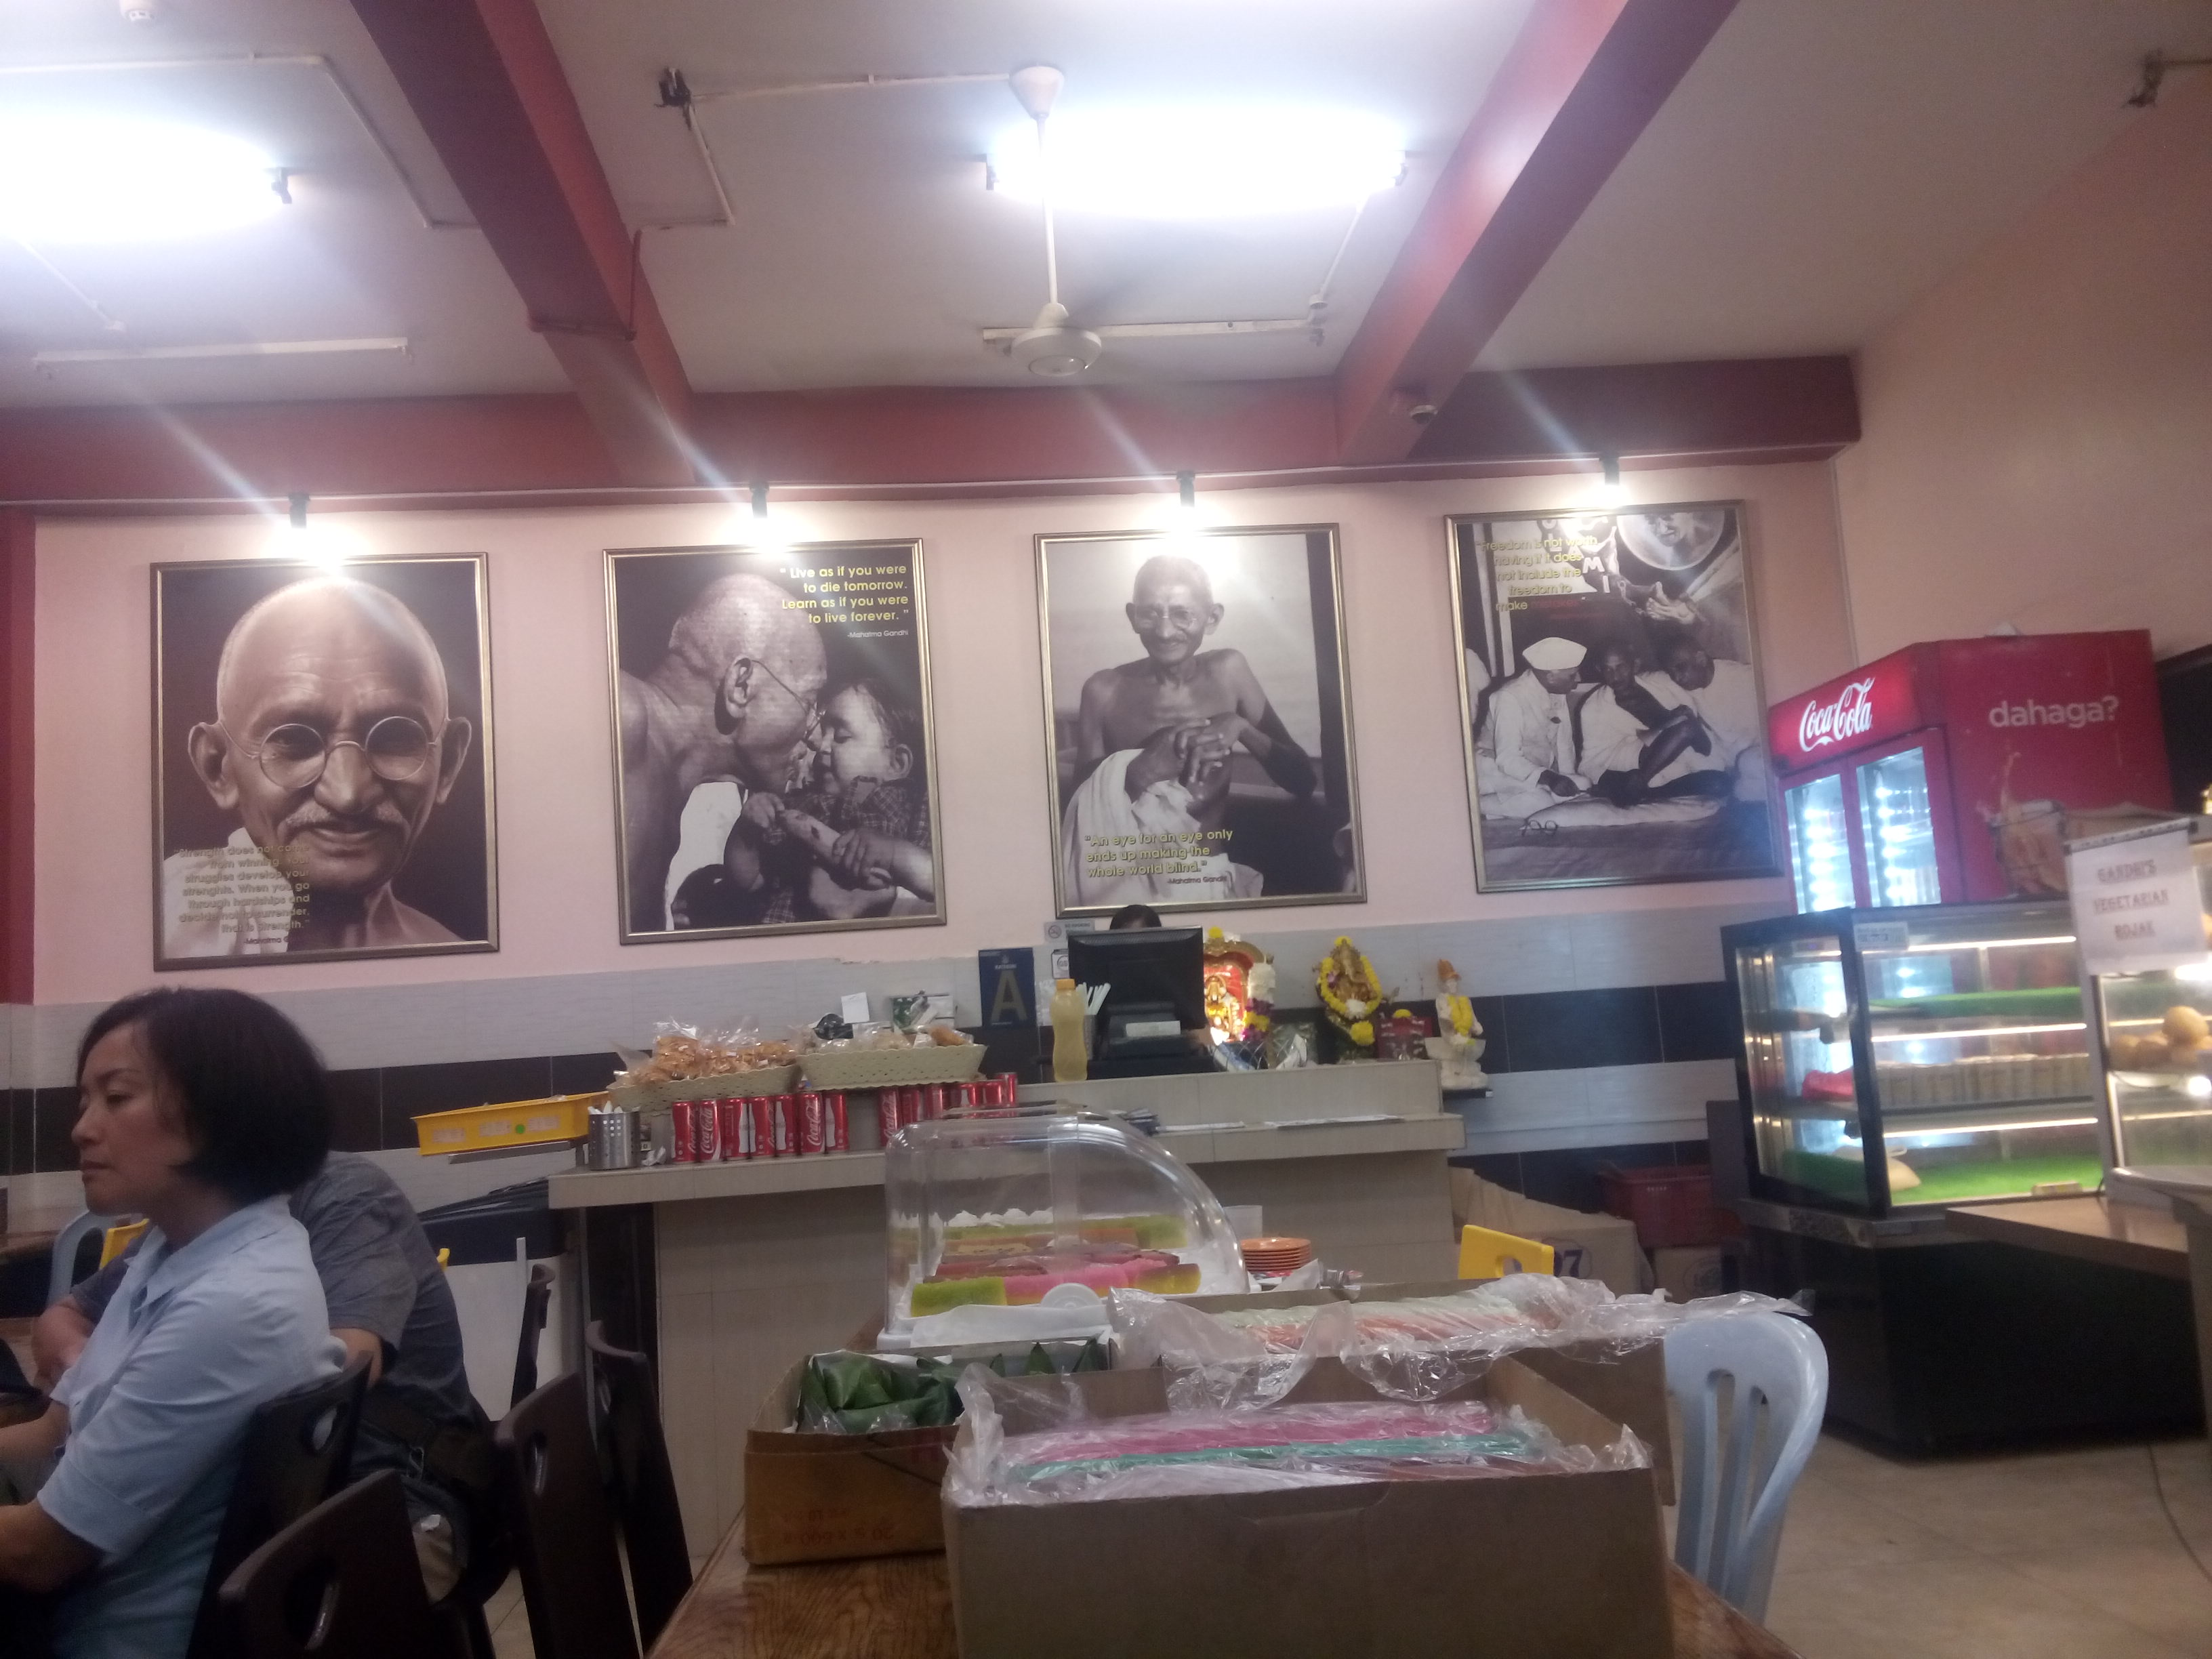 Gandhi's restaurant inside, tables, and photos of Gandhi on the walls